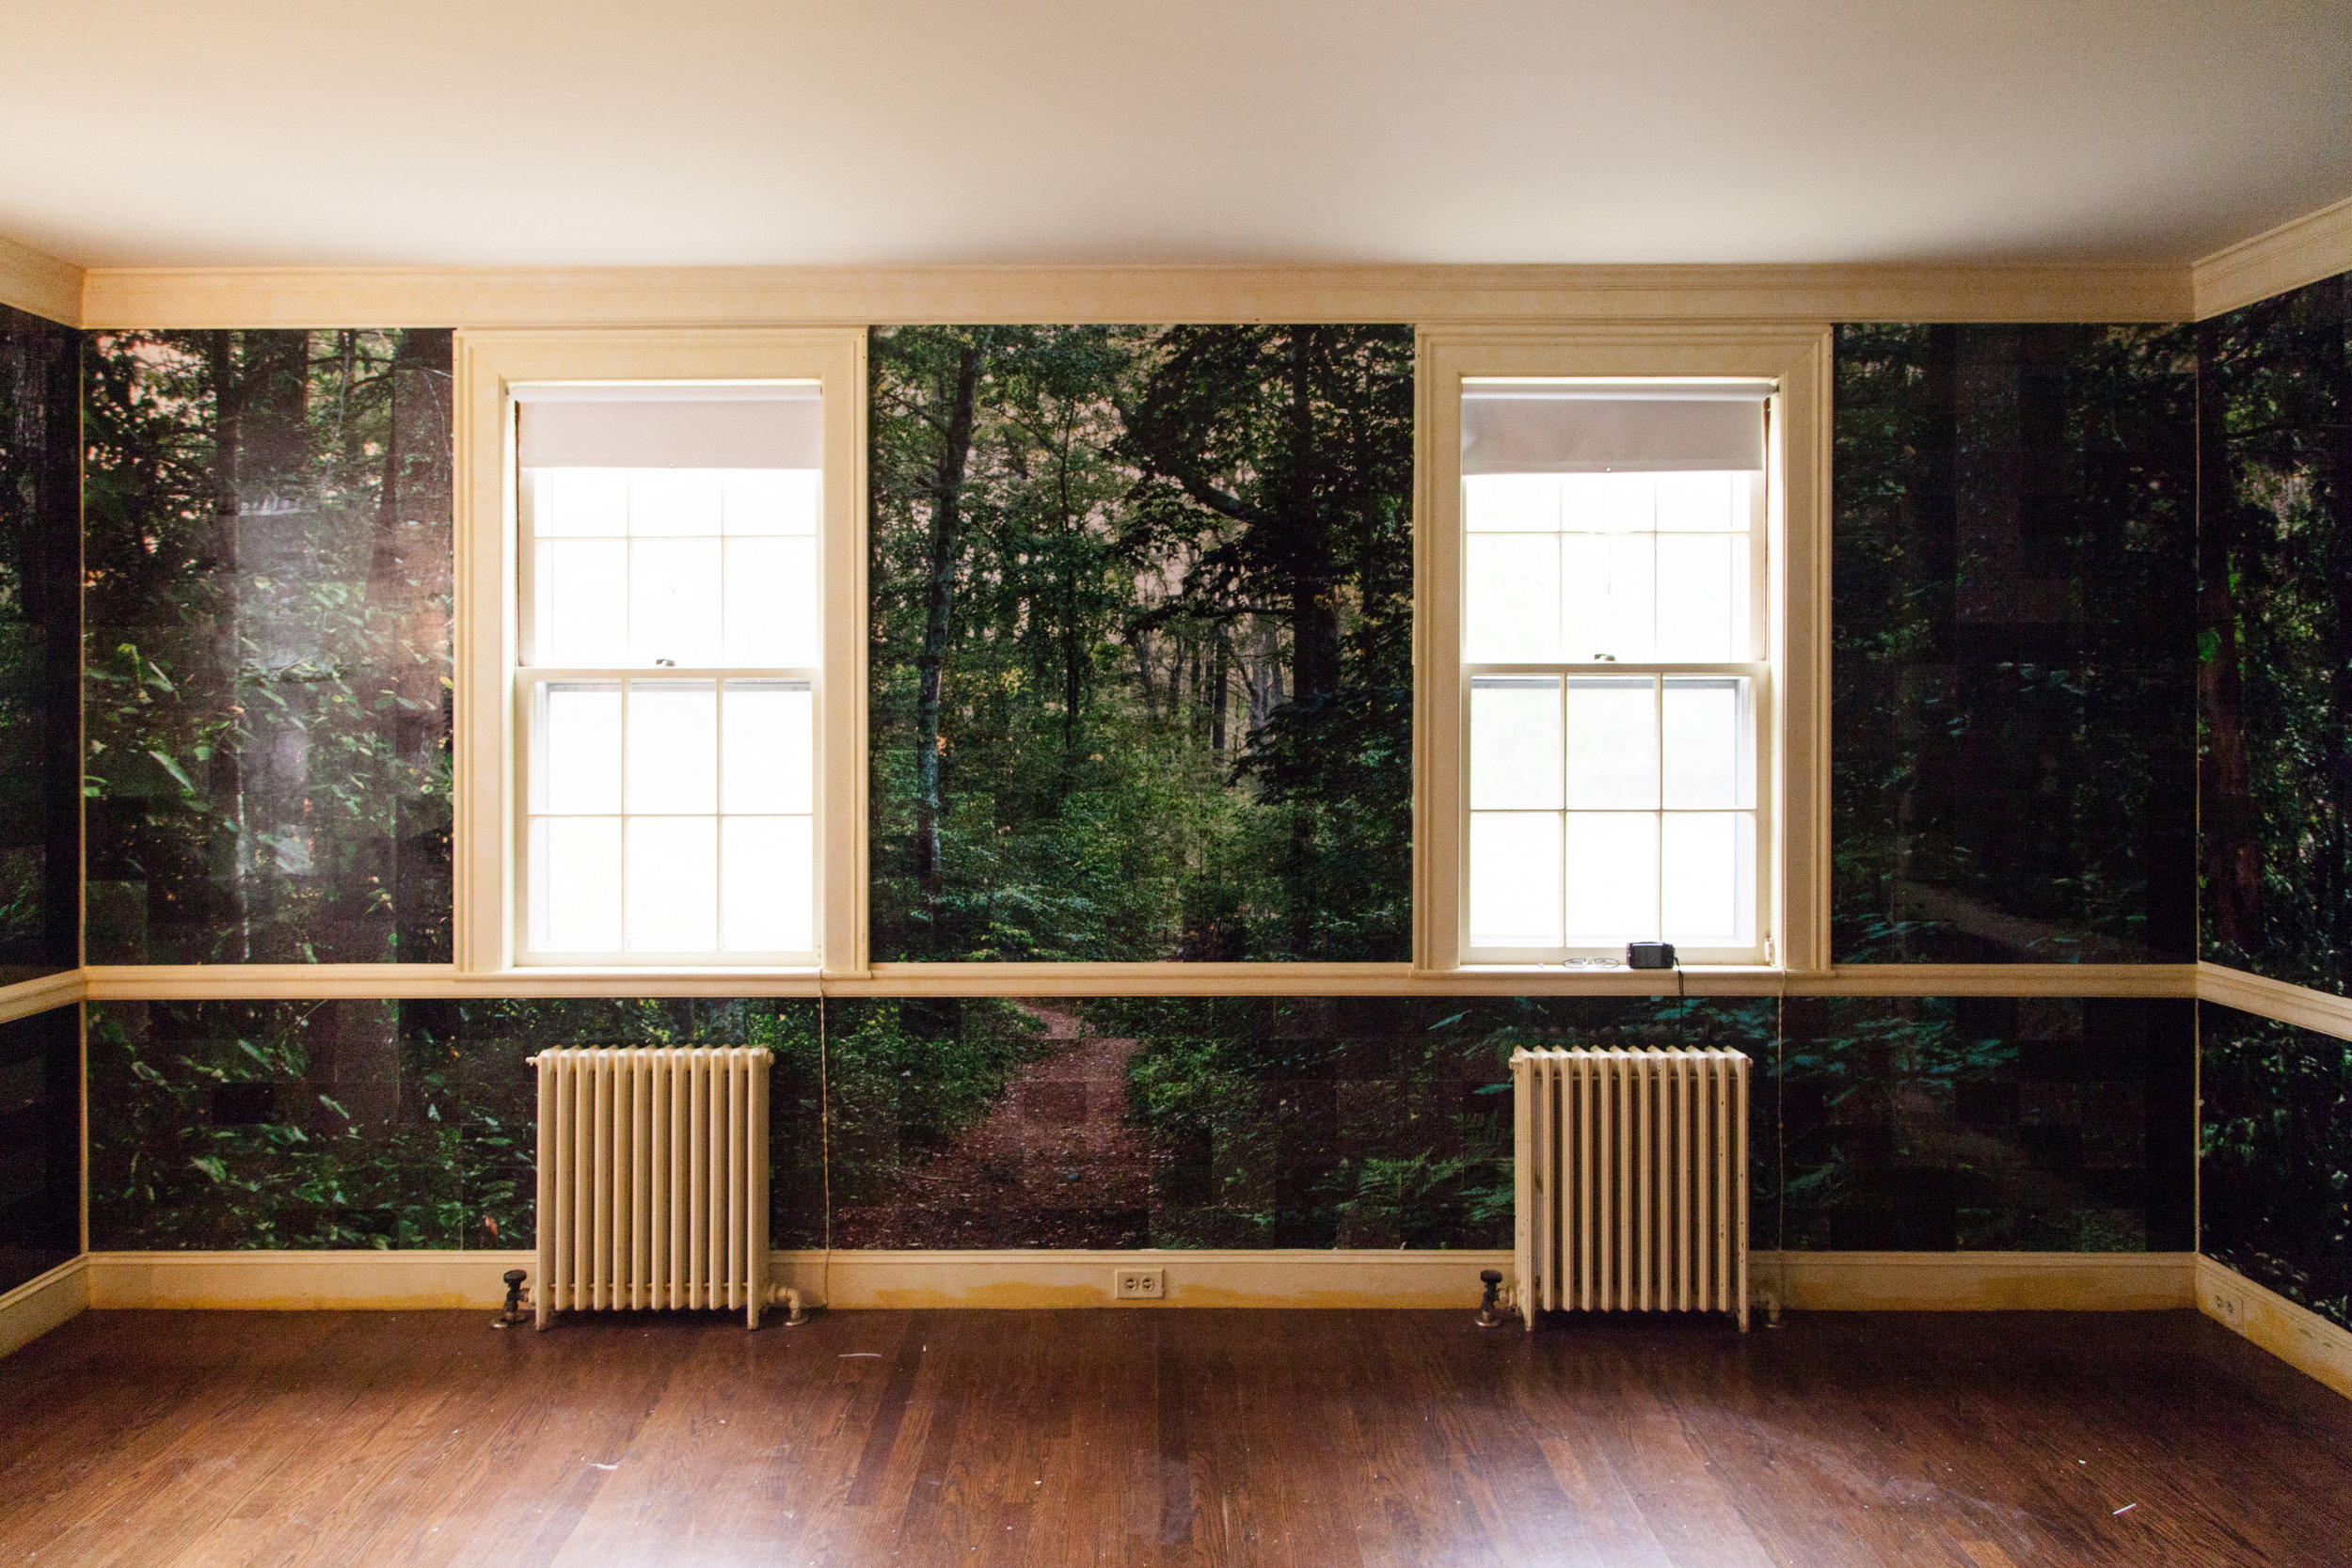 """3000+ photos wallpapering room per the theme """"Bringing the Outdoors In"""""""